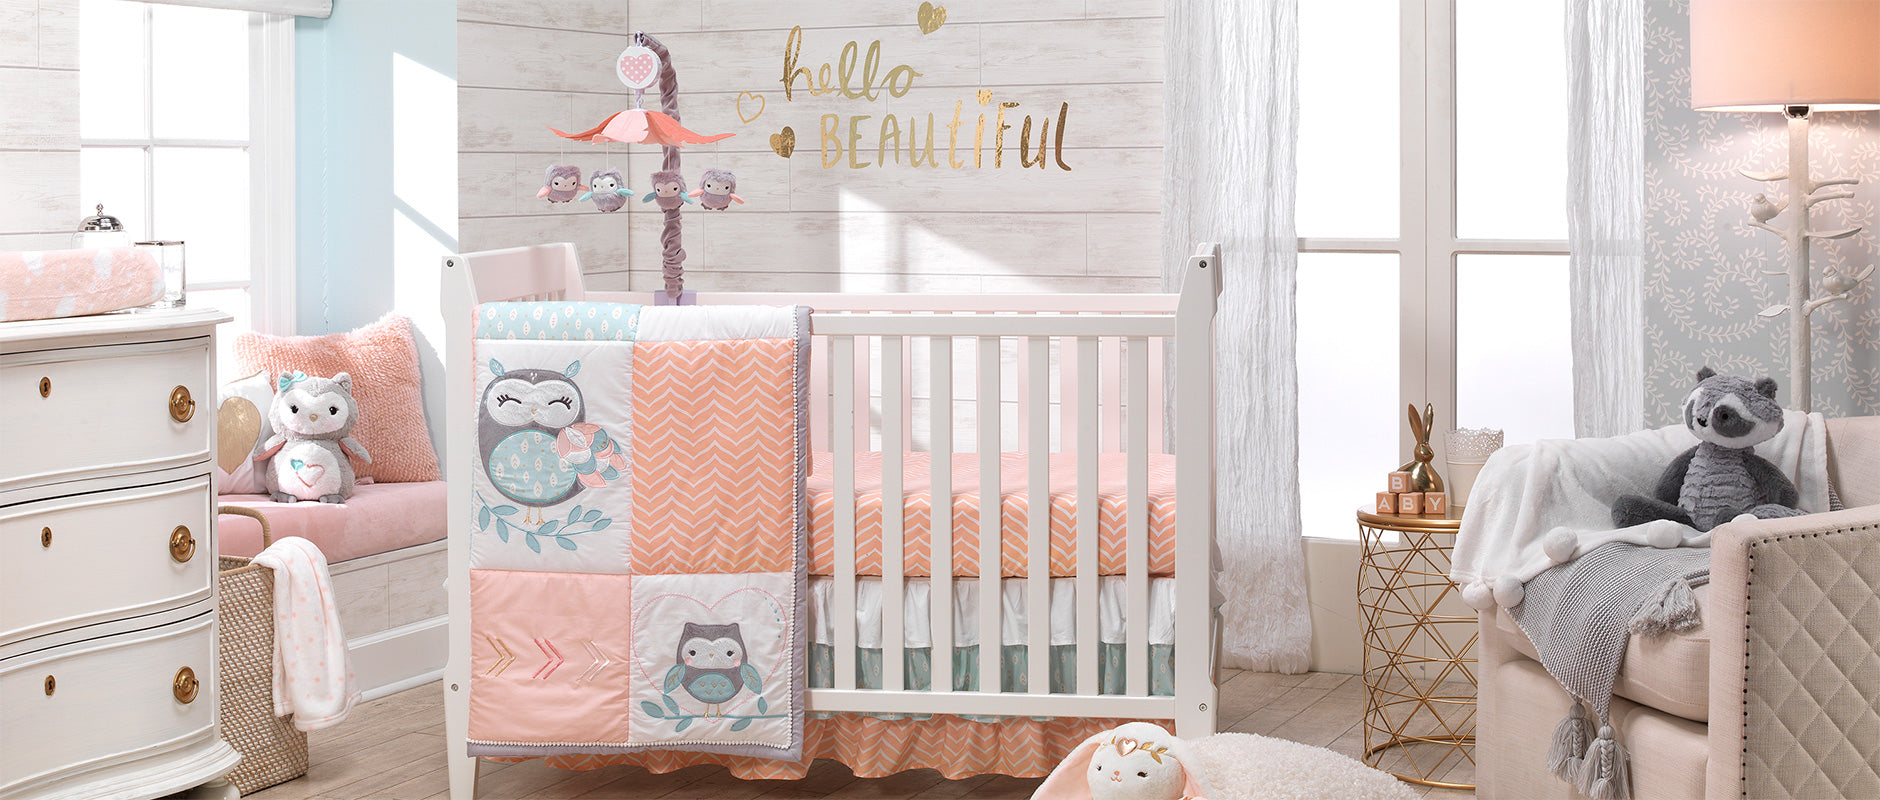 Sweet Owl Dreams Baby Crib Bedding